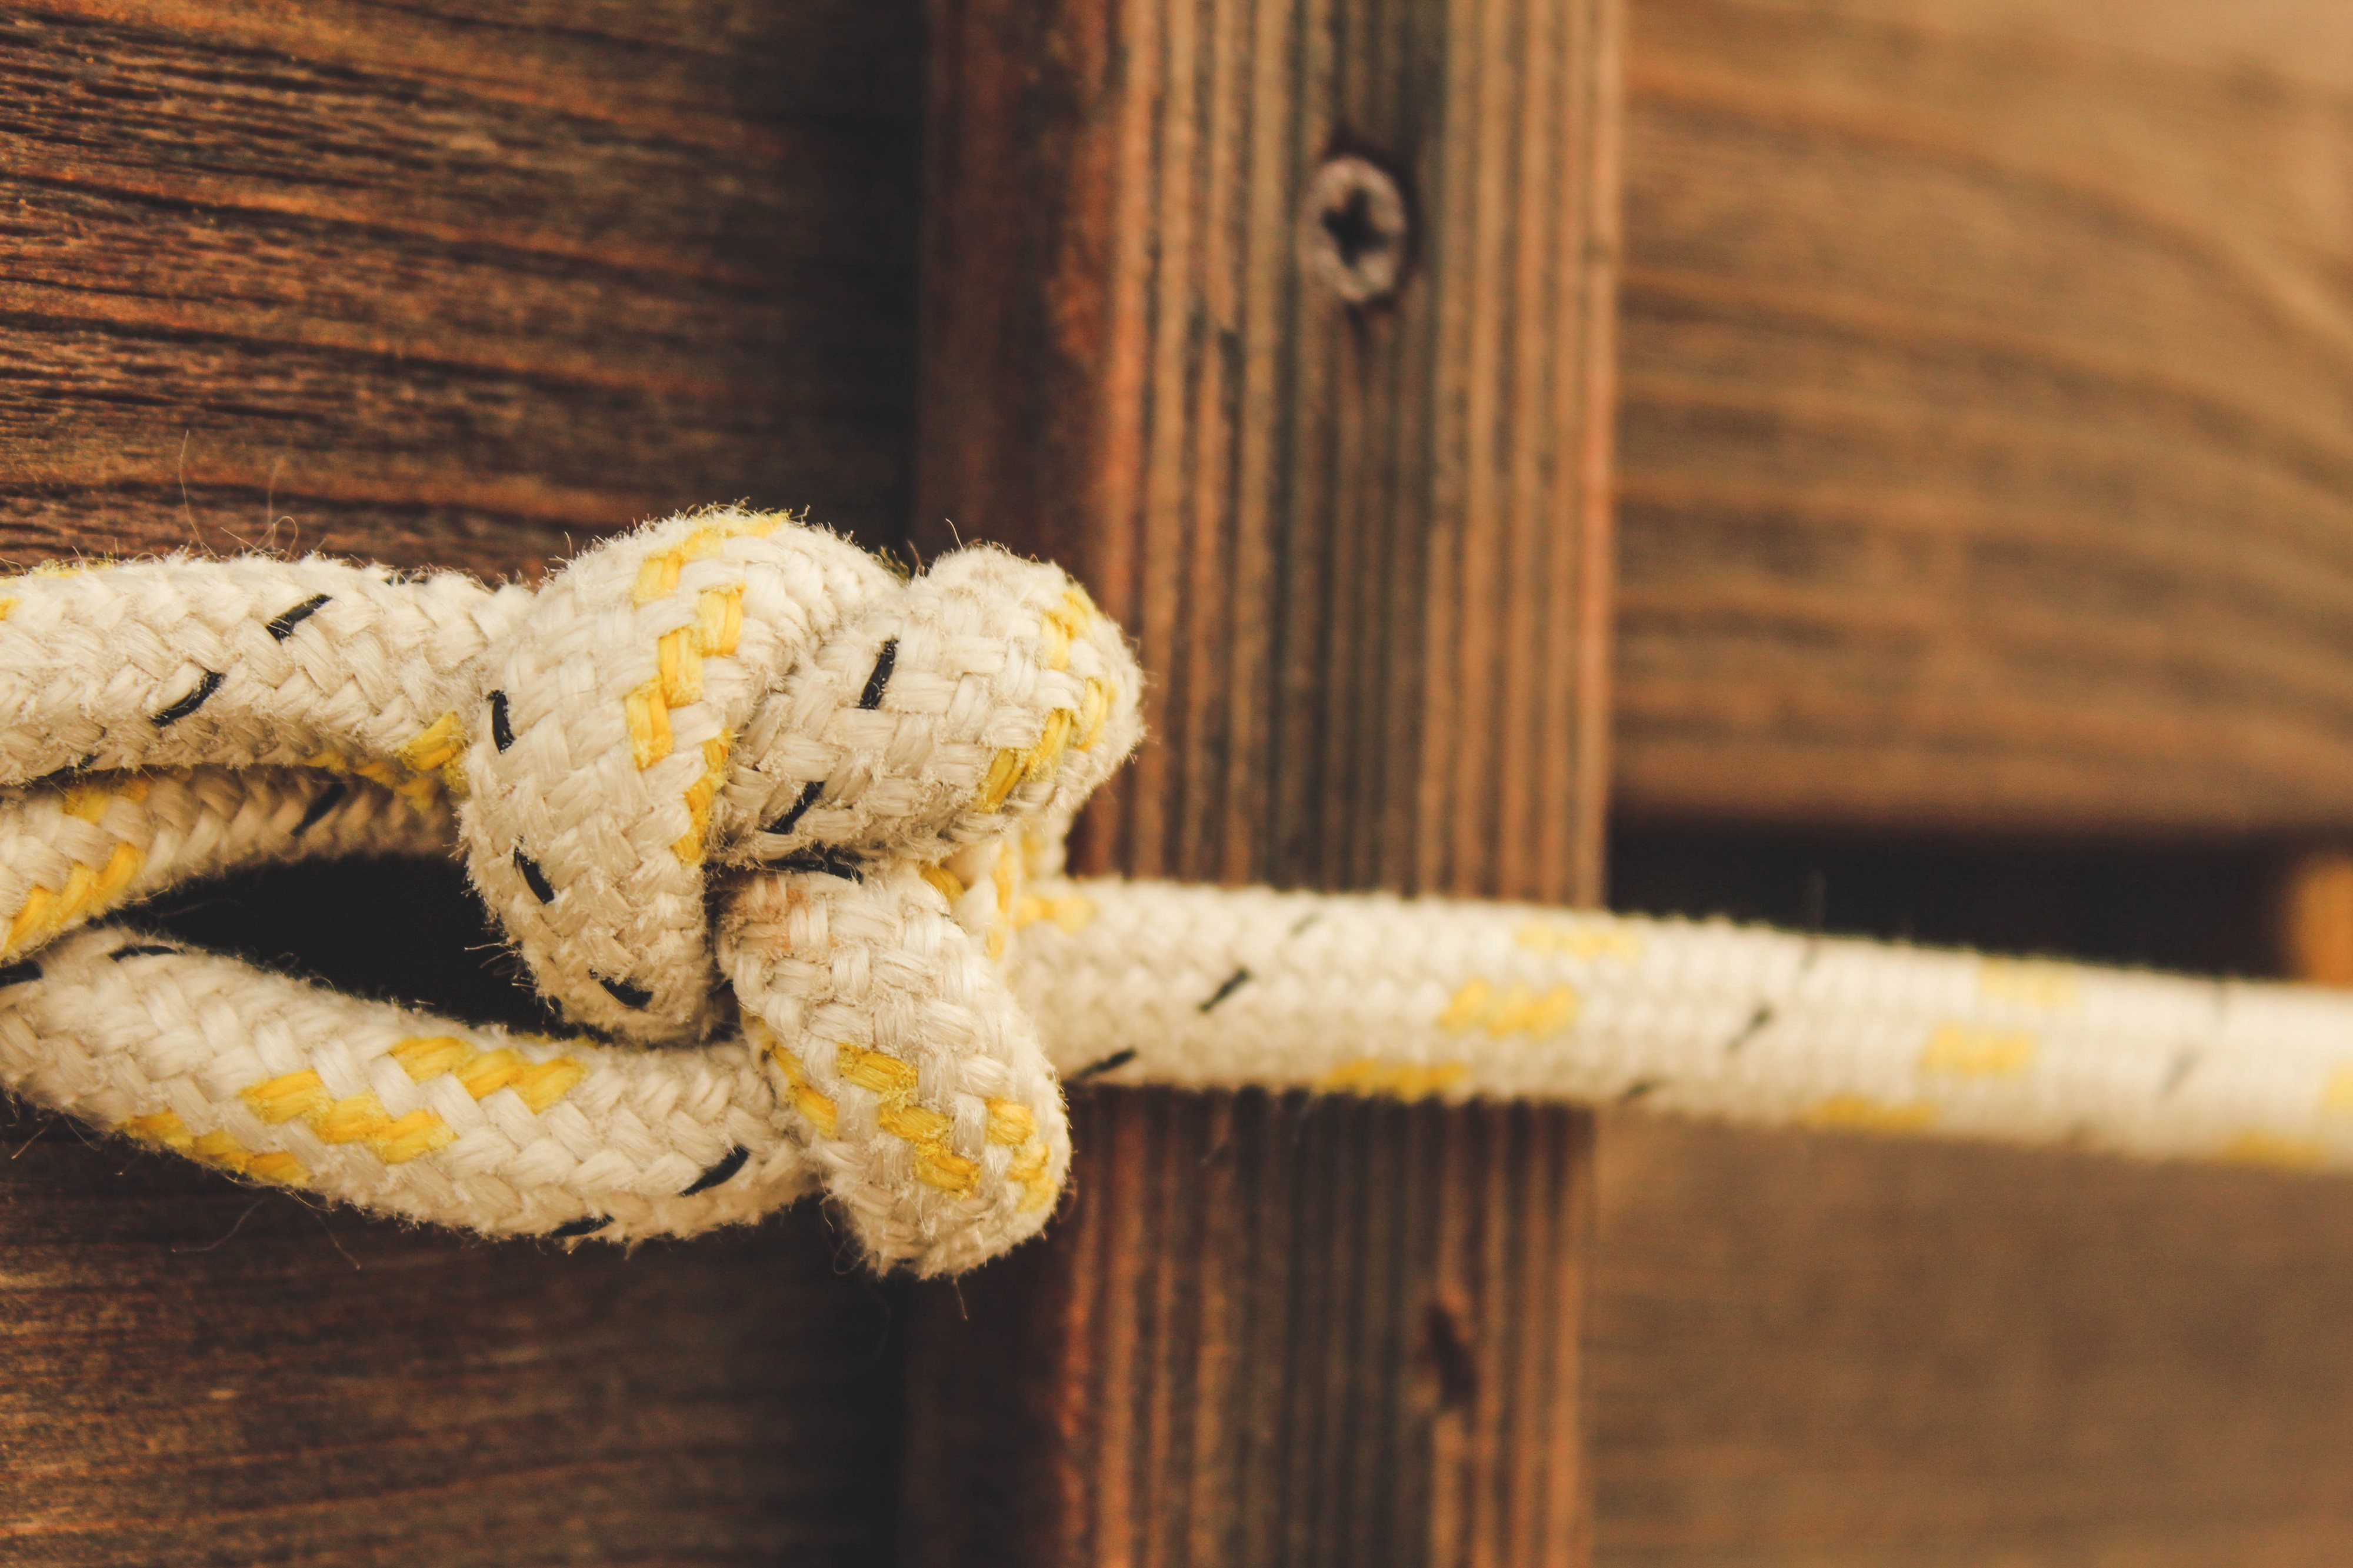 A macro shot of a rope tied into a knot.